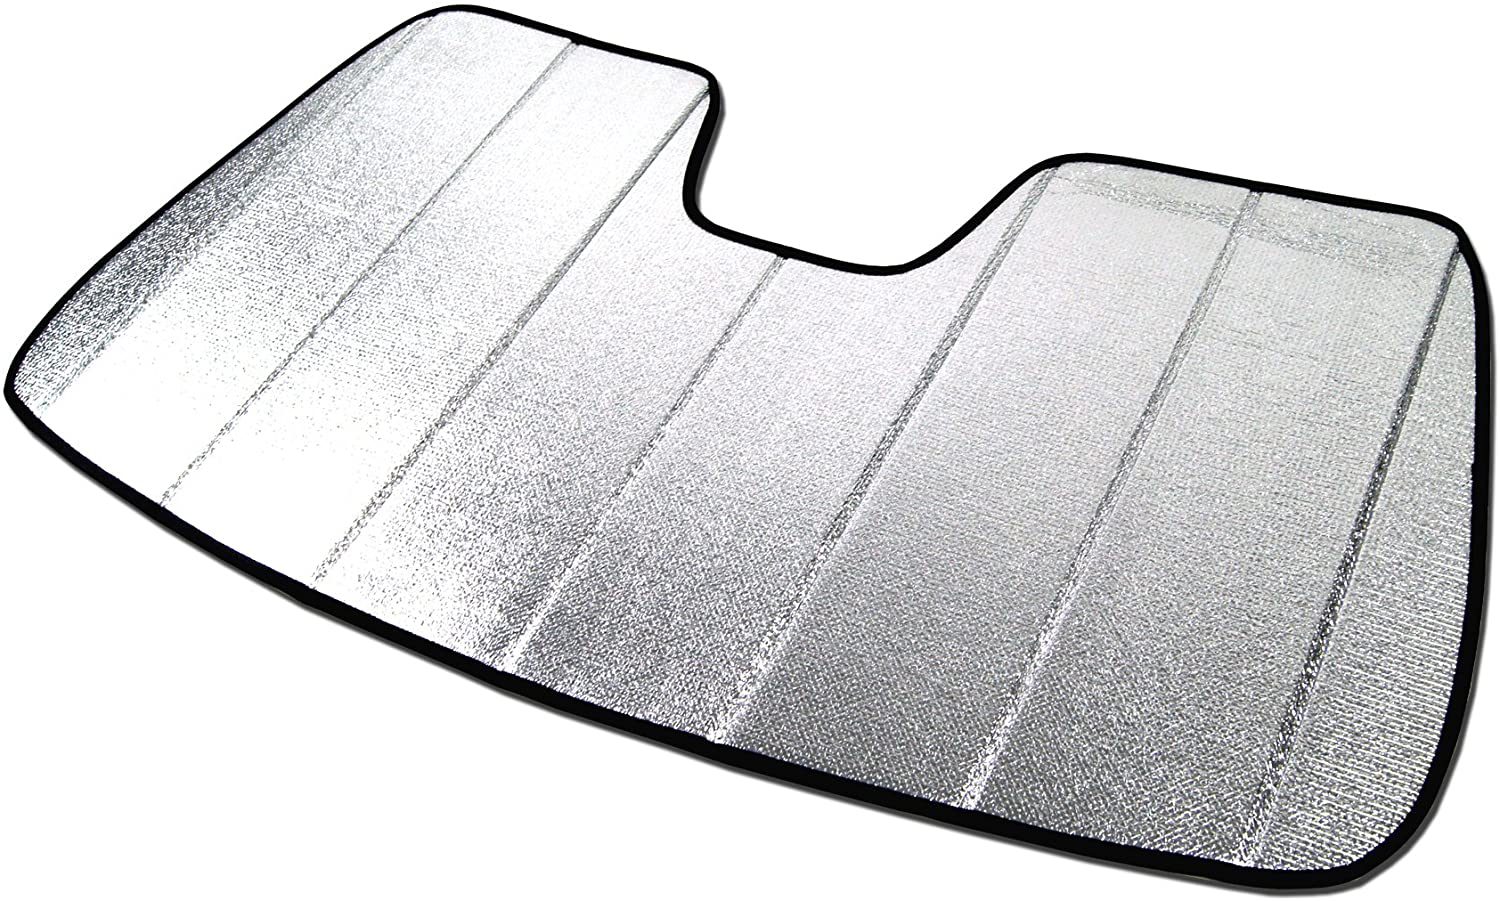 Tuningpros SS-127 Custom Fit Car Windshield Sun Shade Protector Sunshade Visor Silver /& Grey 1-pc Set Compatible With 2006-2011 Honda Civic SI 2 Door